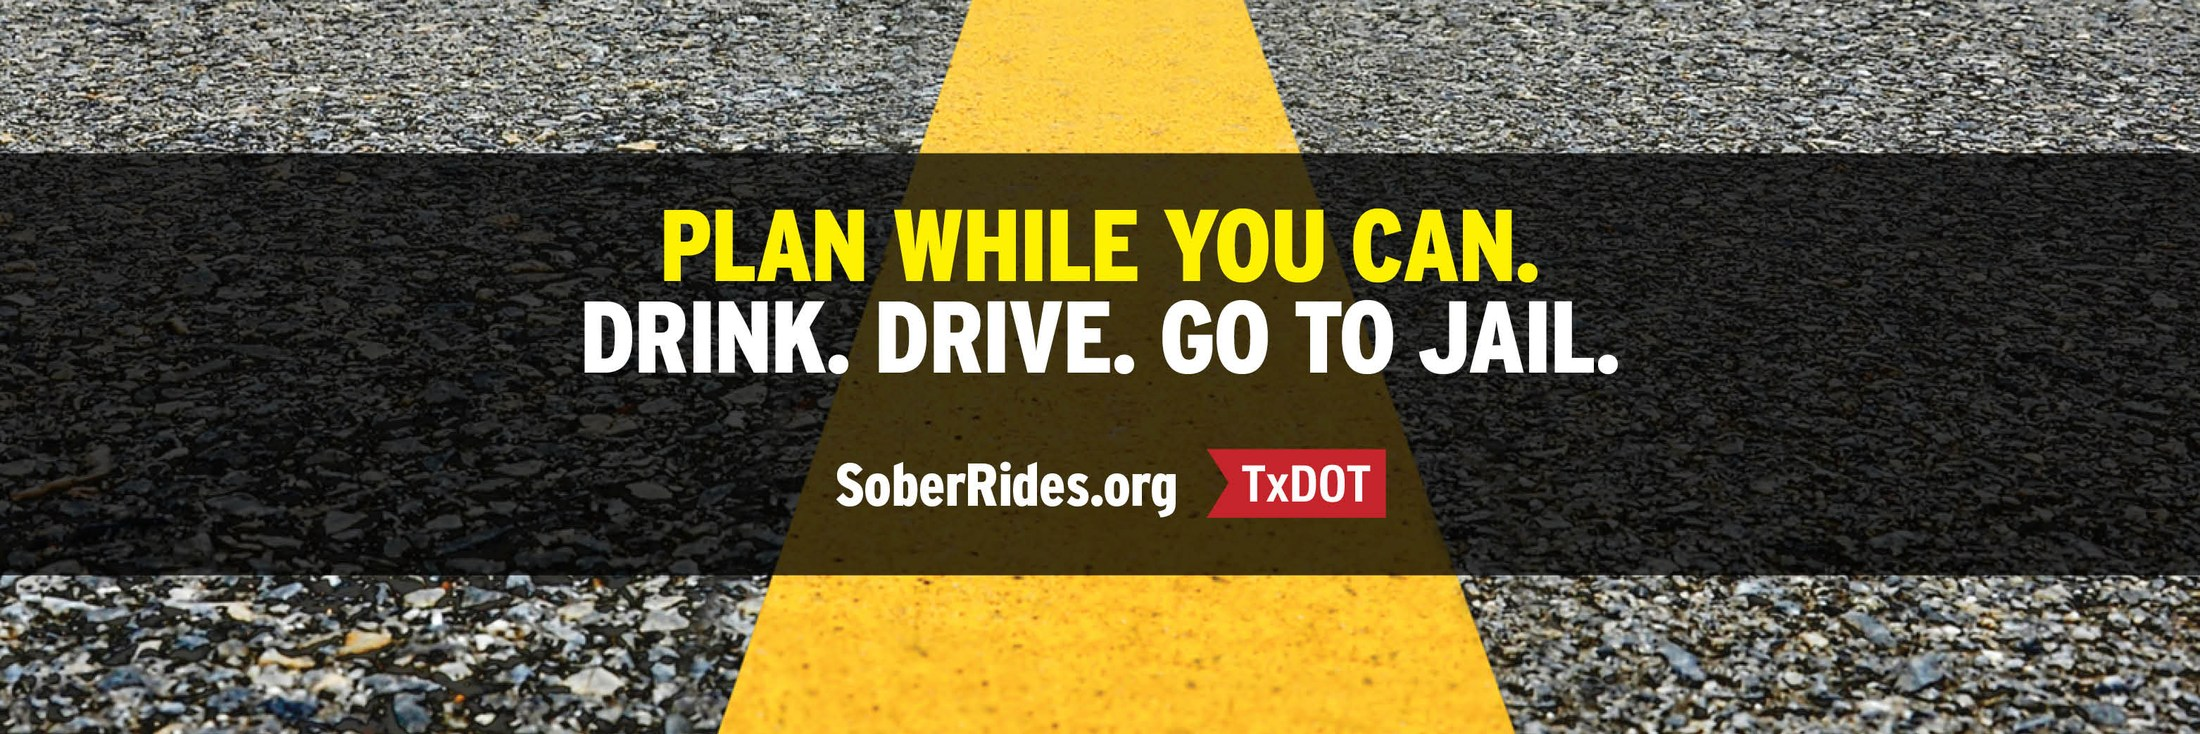 Plan while you can. Drink. Drive. Go to Jail. Sponsored by SoberRides.org and the Texas Department of Transportation